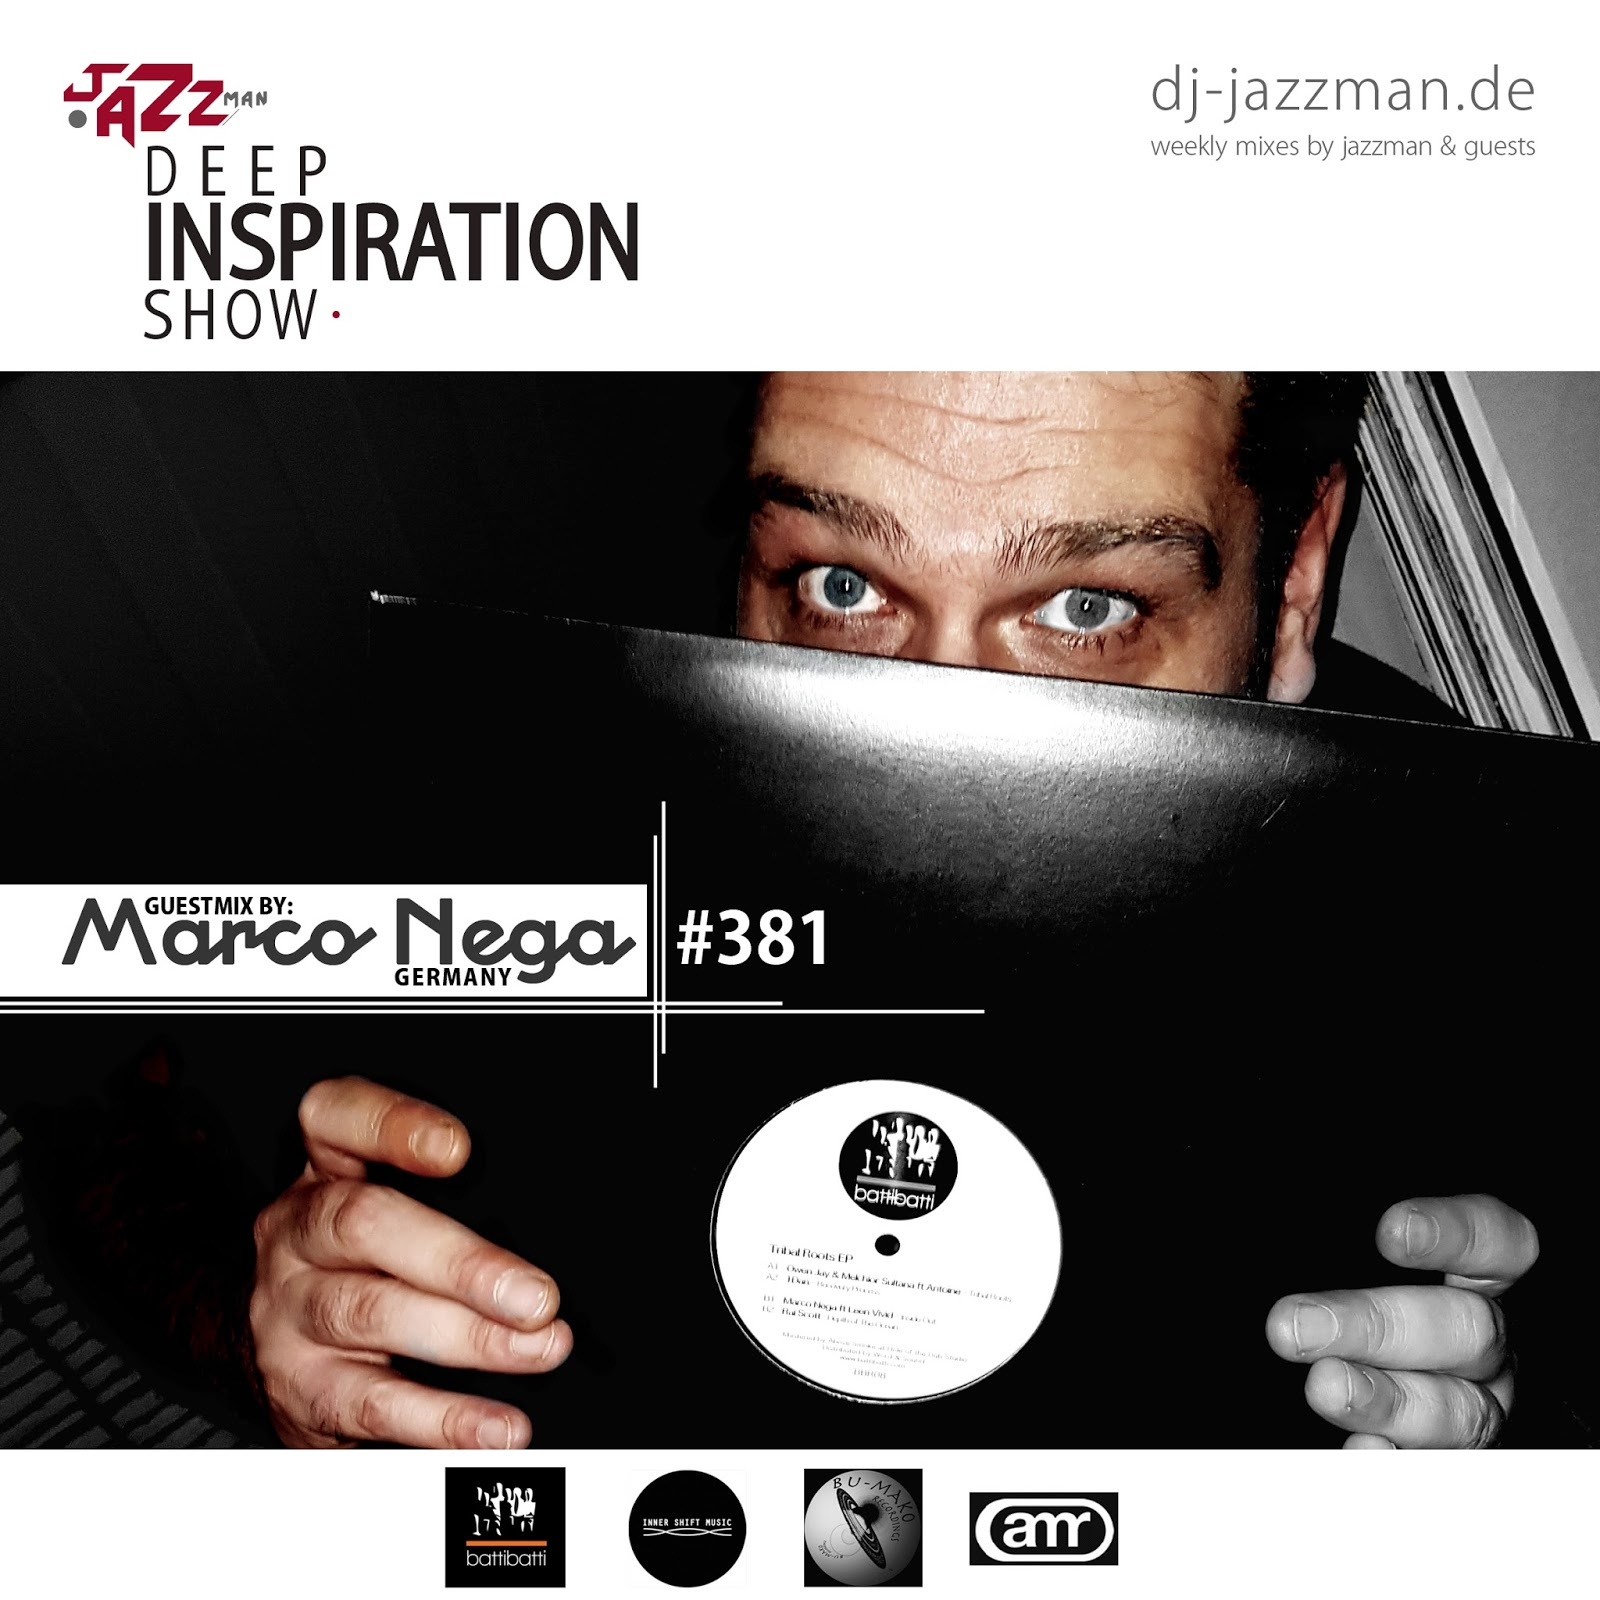 Various deep house stories vol 10 at juno download - This Week We Have A Dope Tape By Marco Nega In The Deep Inspiration Show If You Are Listening Regularly To The Show Its For Sure Not The First Time You